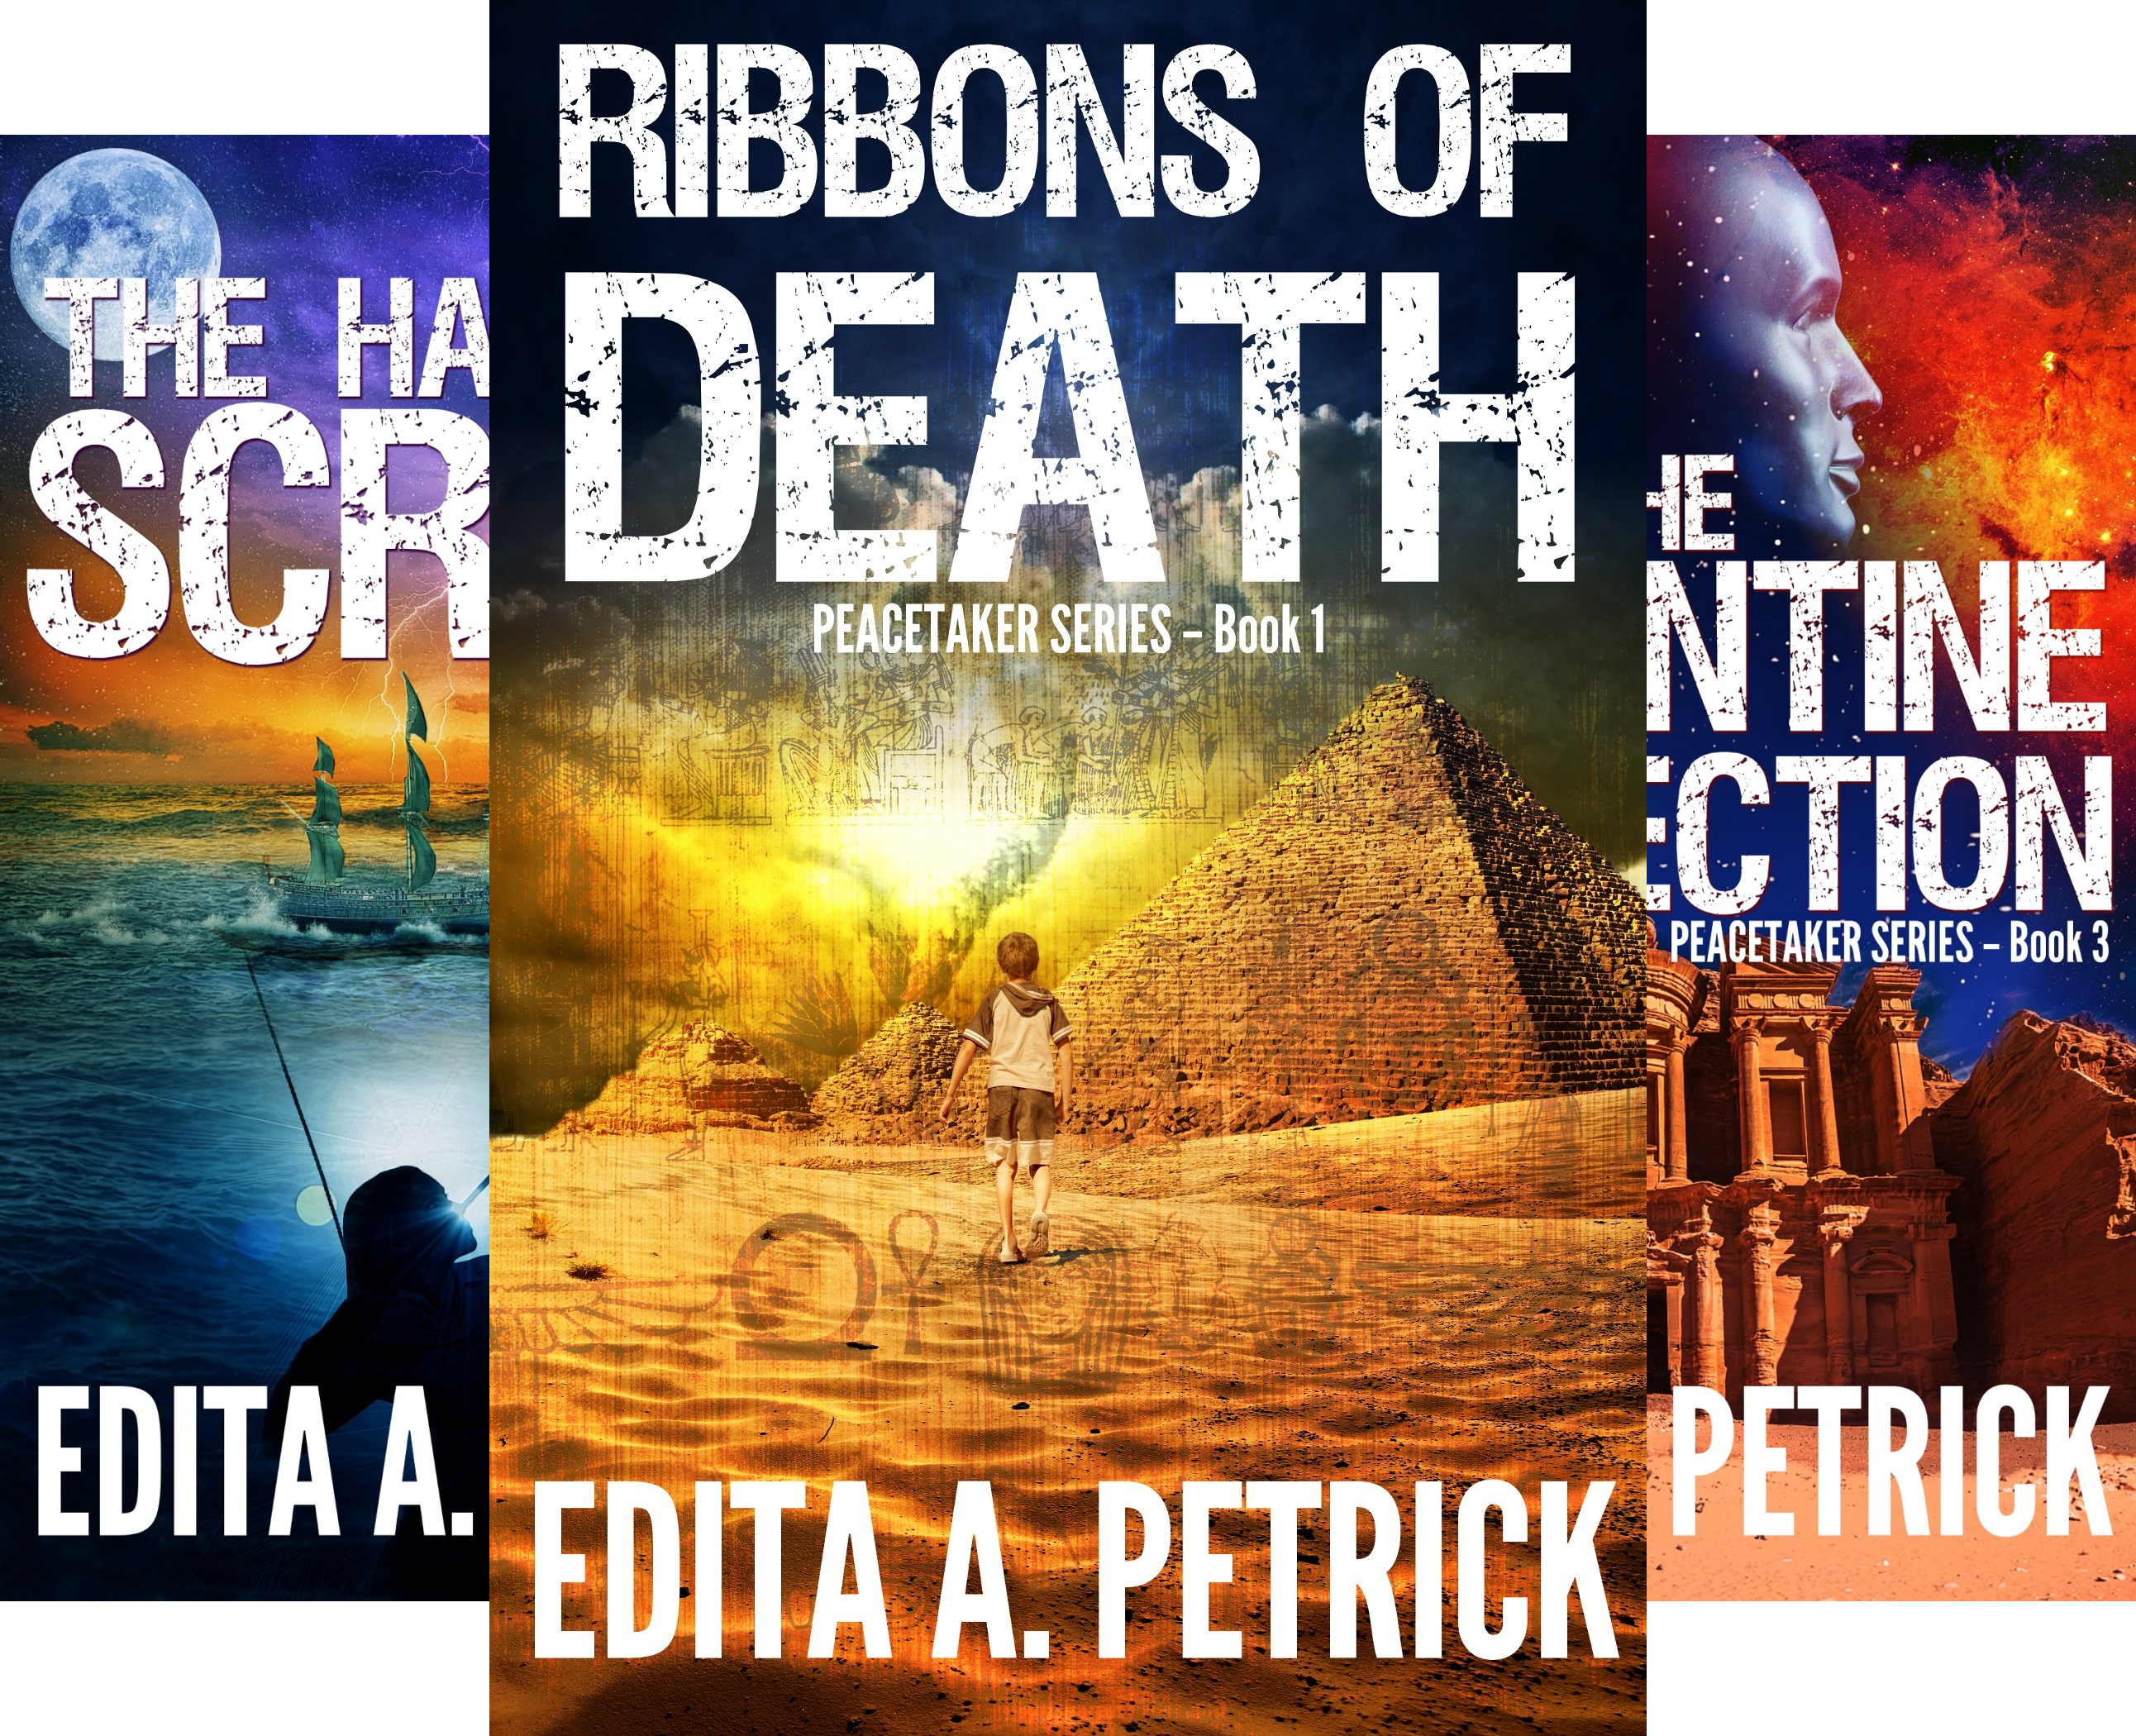 Peacetaker Series (5 Book Series)